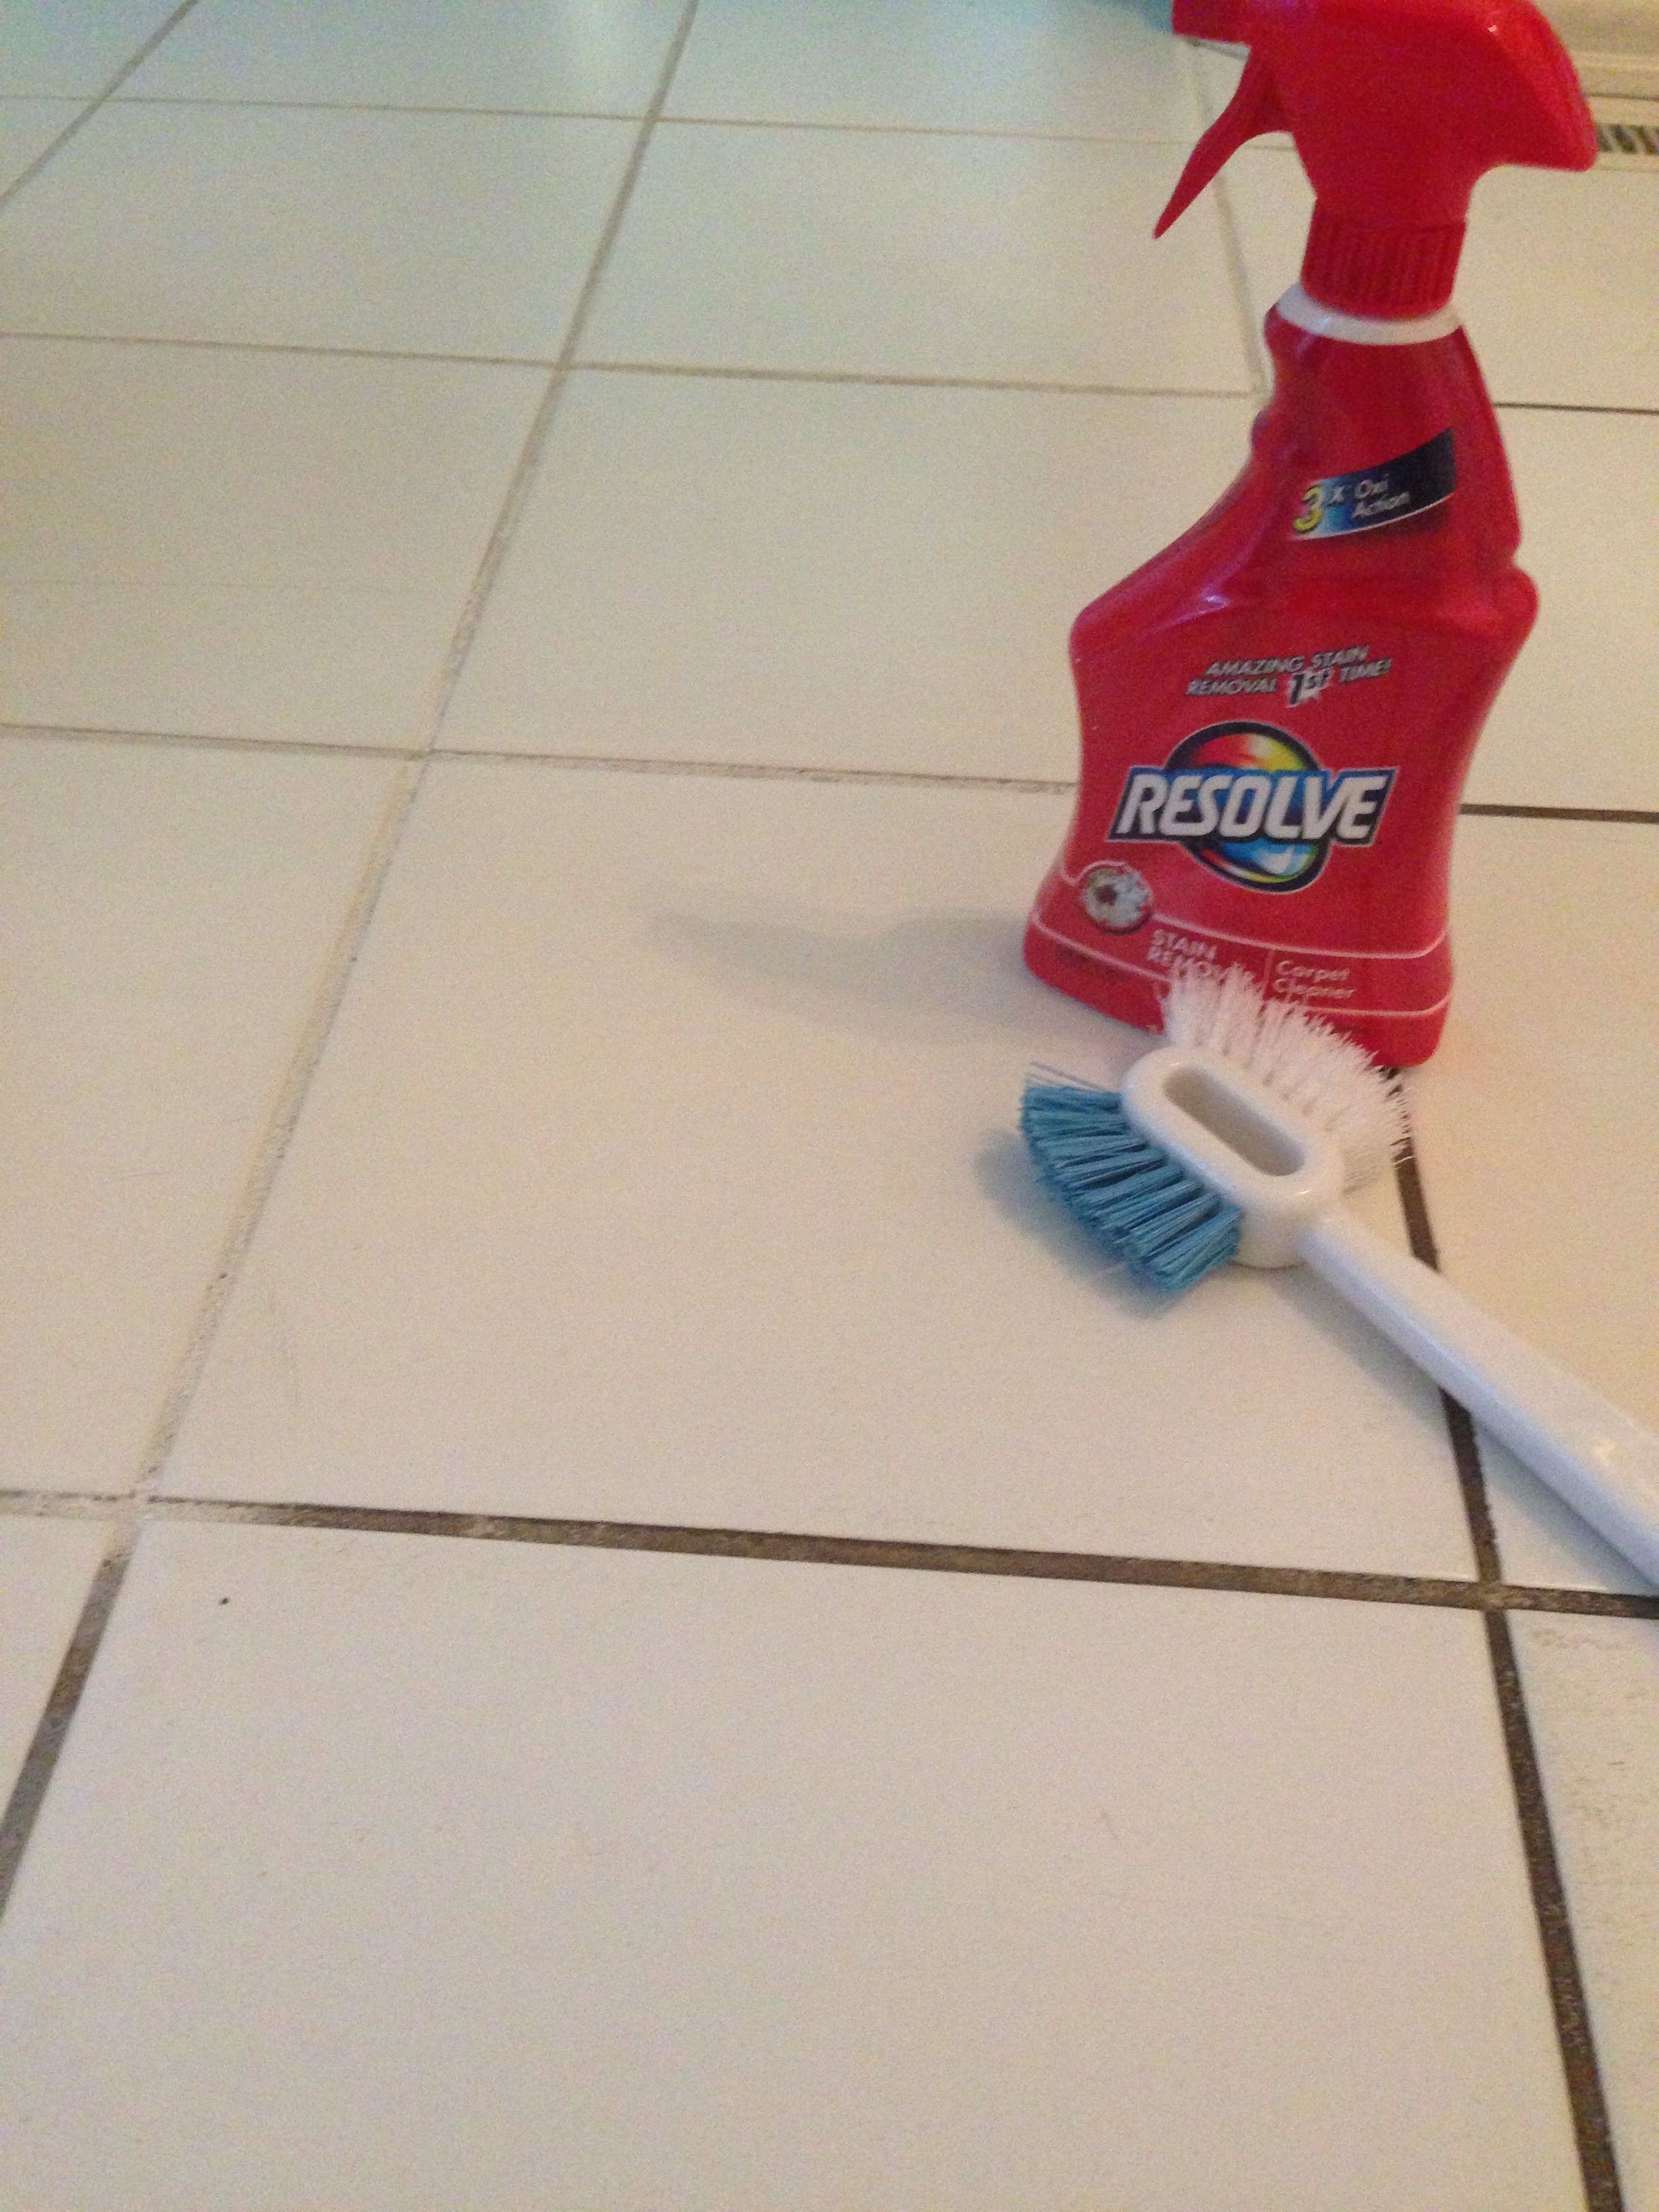 Resolve carpet cleaner to clean grout hydrogen peroxide grout i have been wanting to clean the grout between our kitchen tiles for the longest time dailygadgetfo Choice Image